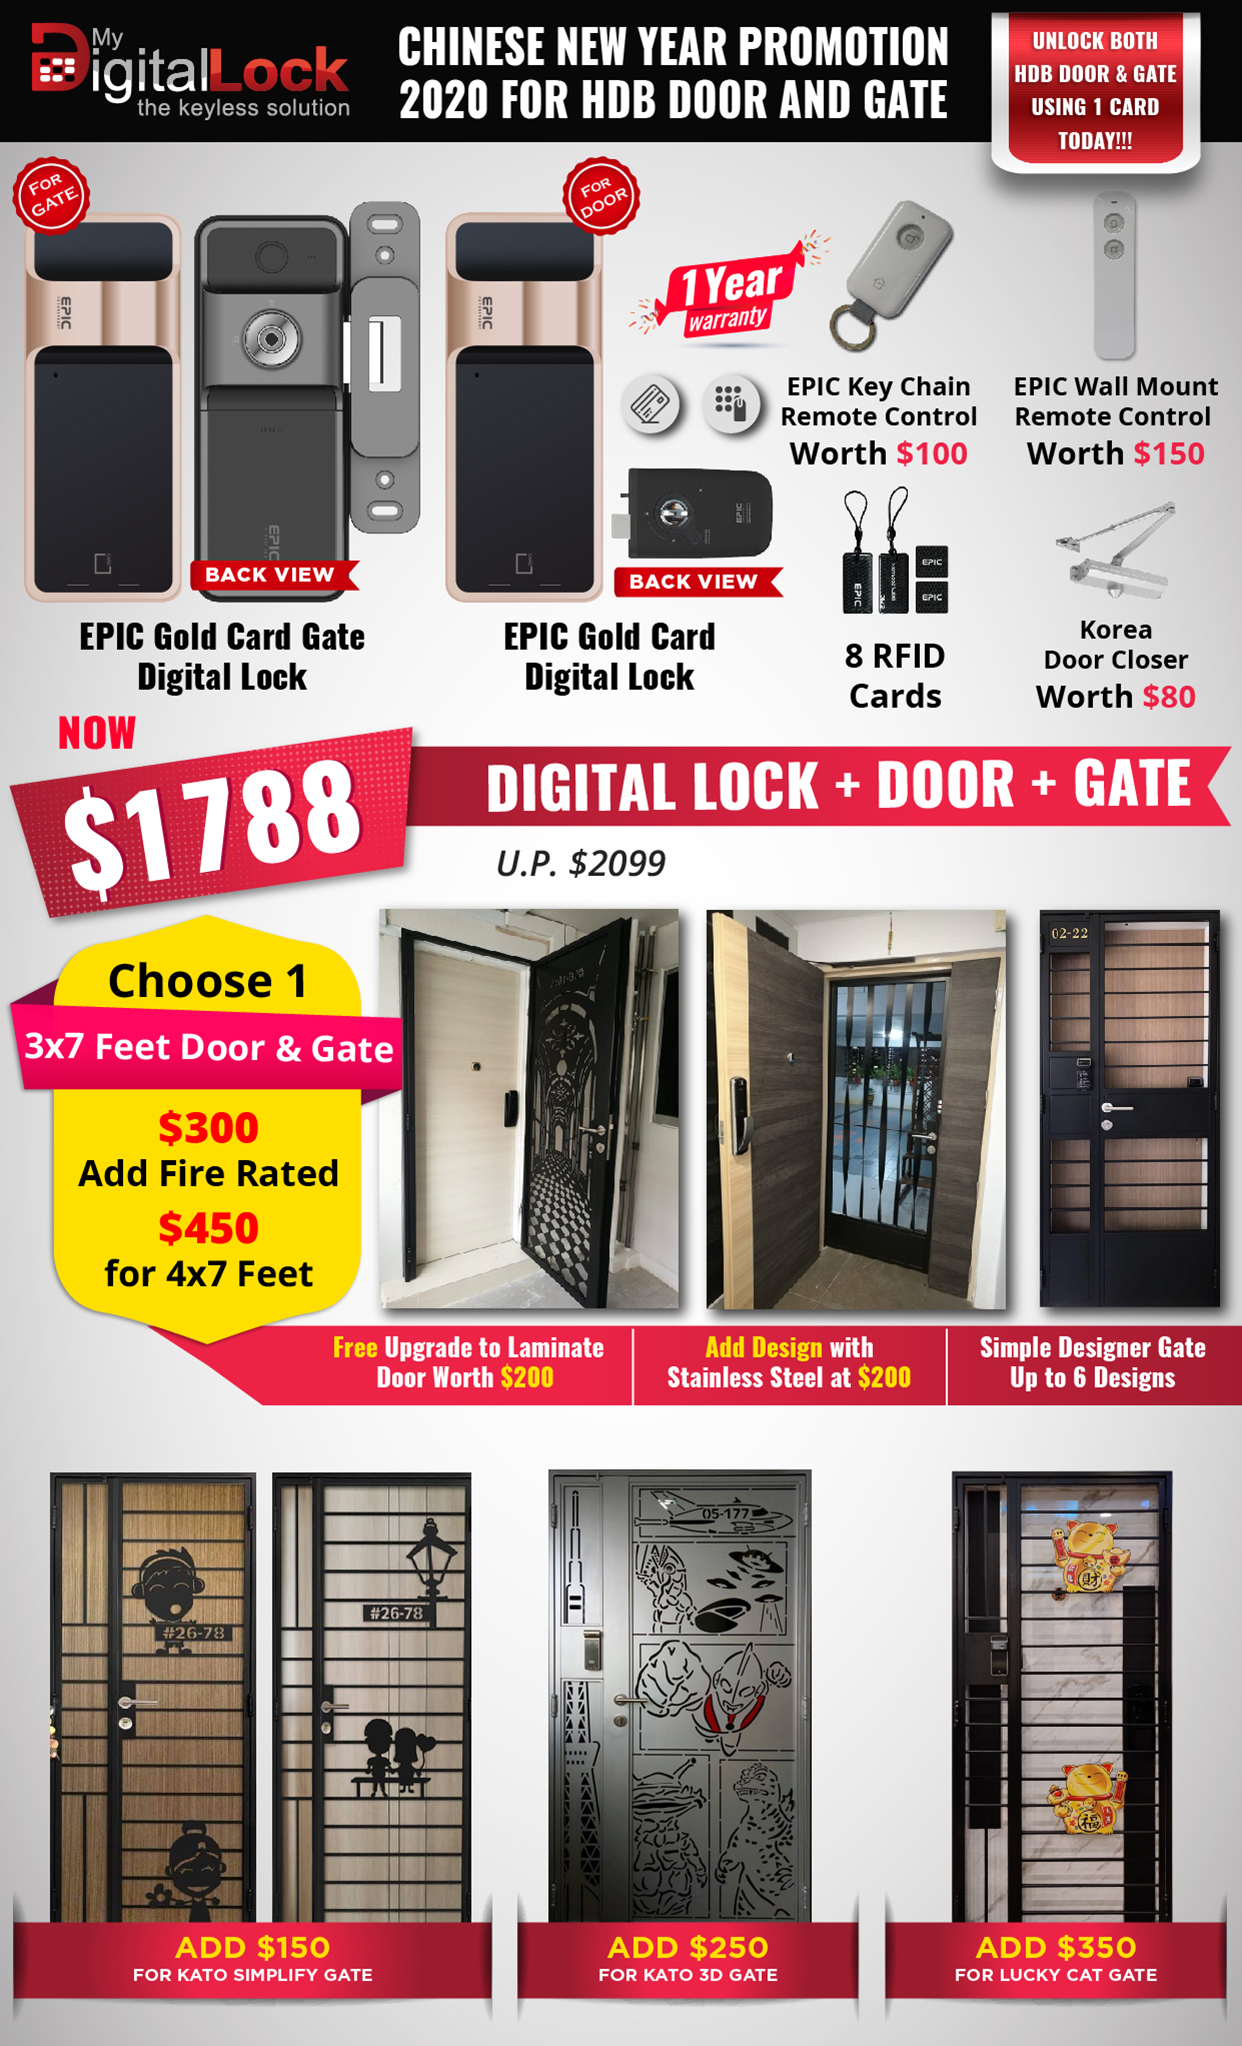 Buy EPIC Gold Card Gate Digital Lock @ My Digital Lock. Call 9067 7990